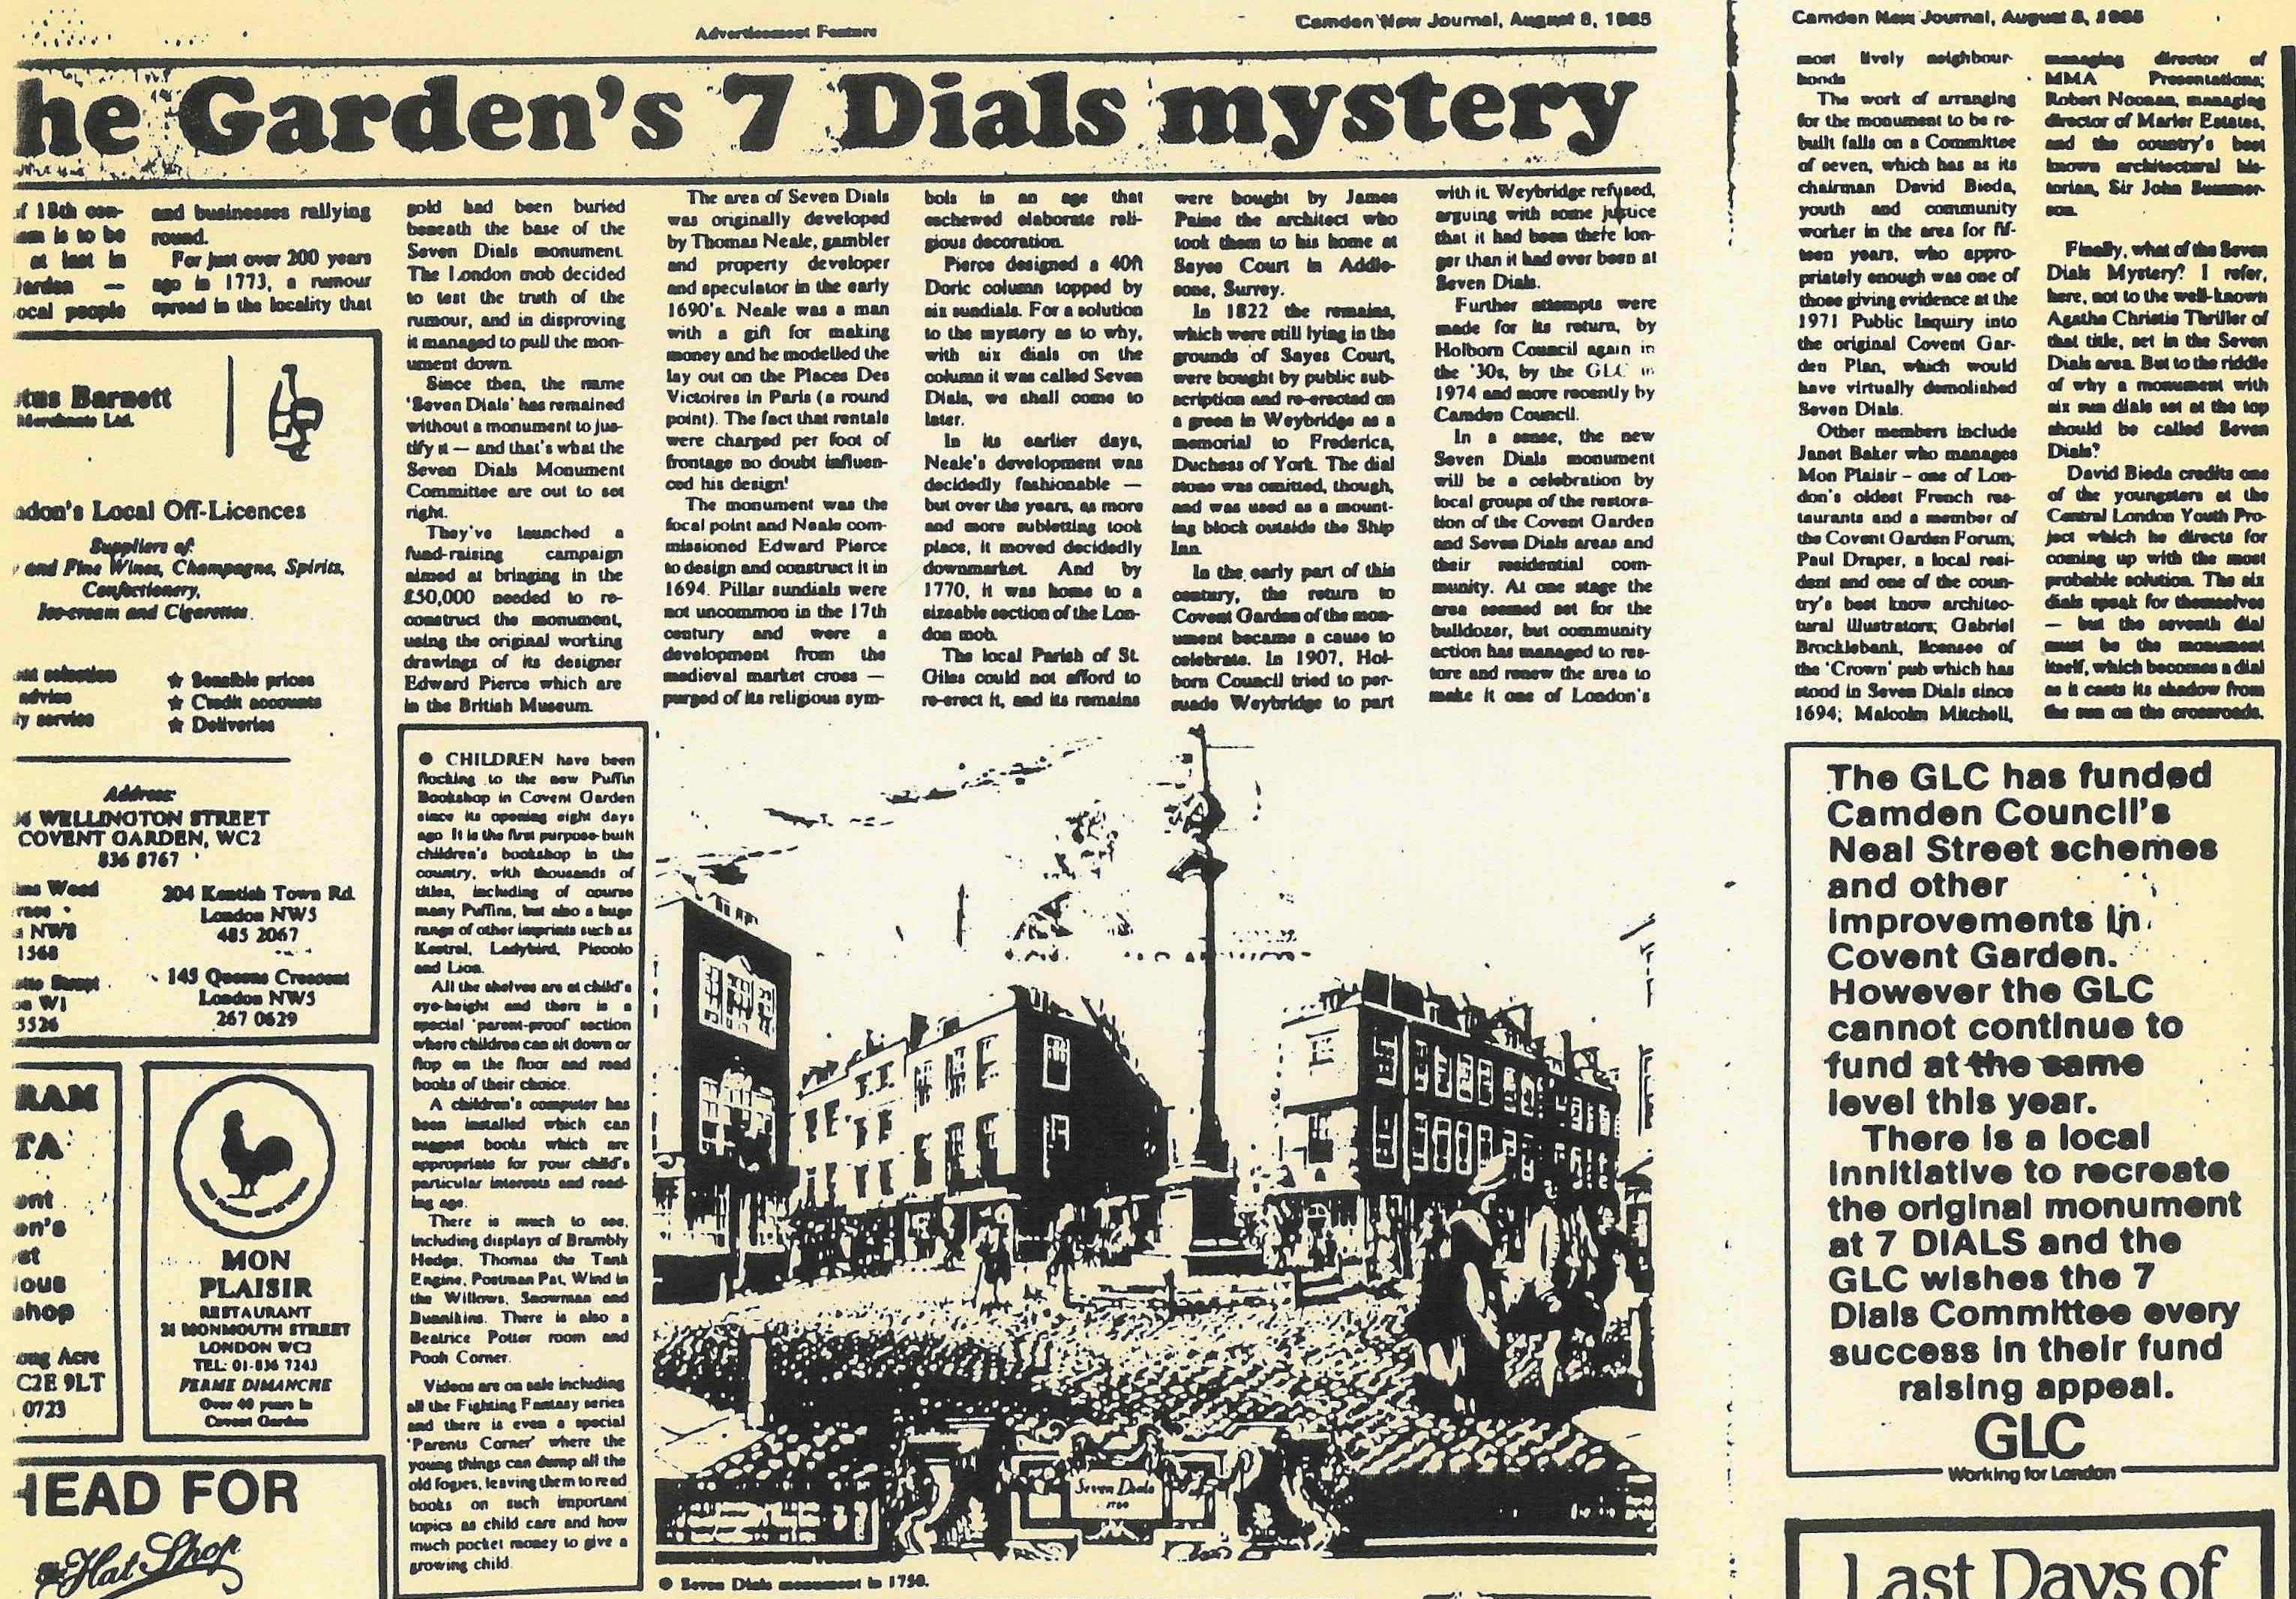 08 Aug. 1985 � Camden New Journal: The Garden's 7 Dials mystery.